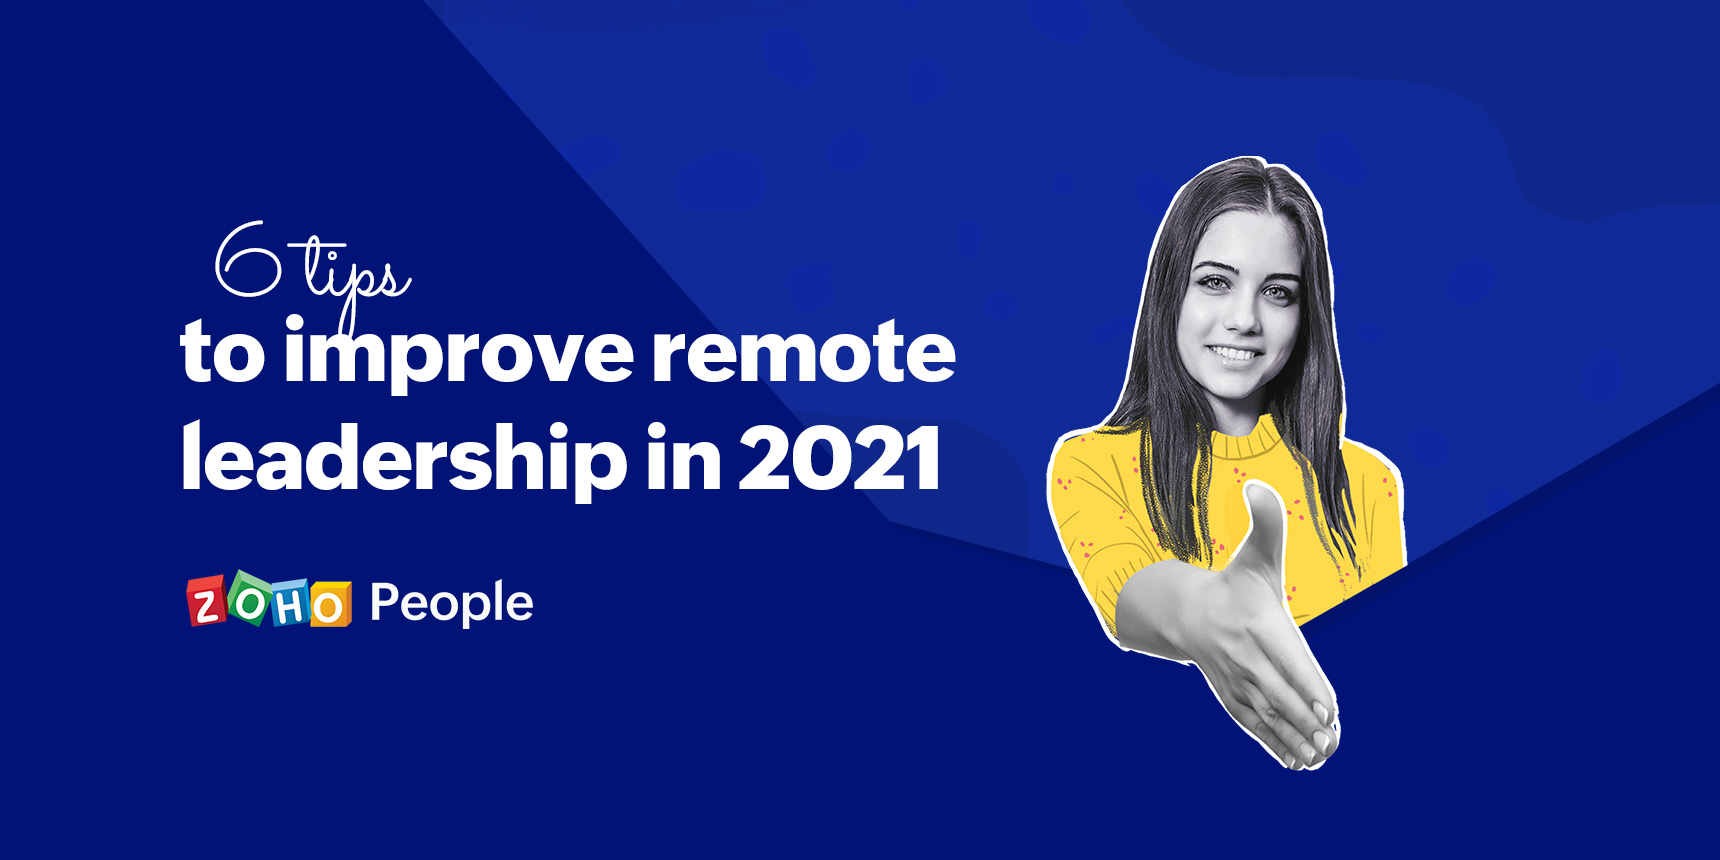 Tips to improve remote leadership in 2021